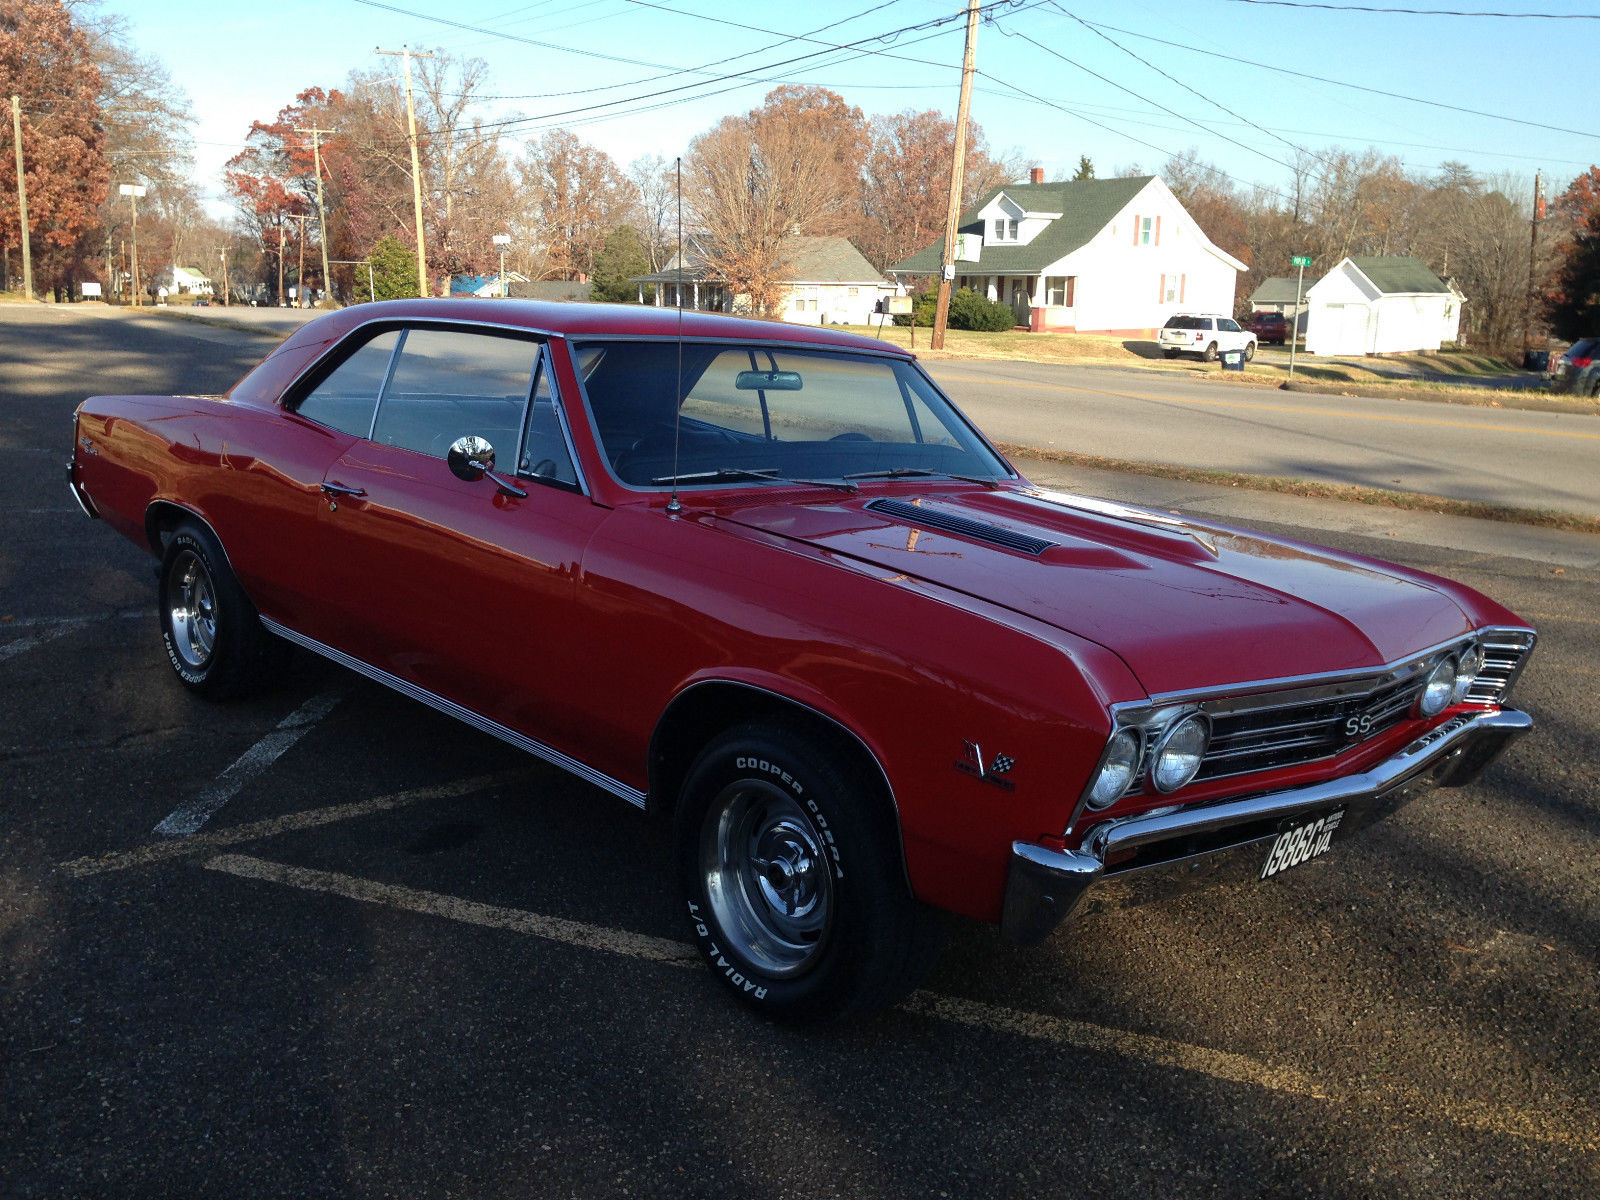 New Chevelle Ss >> 1967 Chevelle SS (clone) , red with black interior - Classic Chevrolet Chevelle 1967 for sale